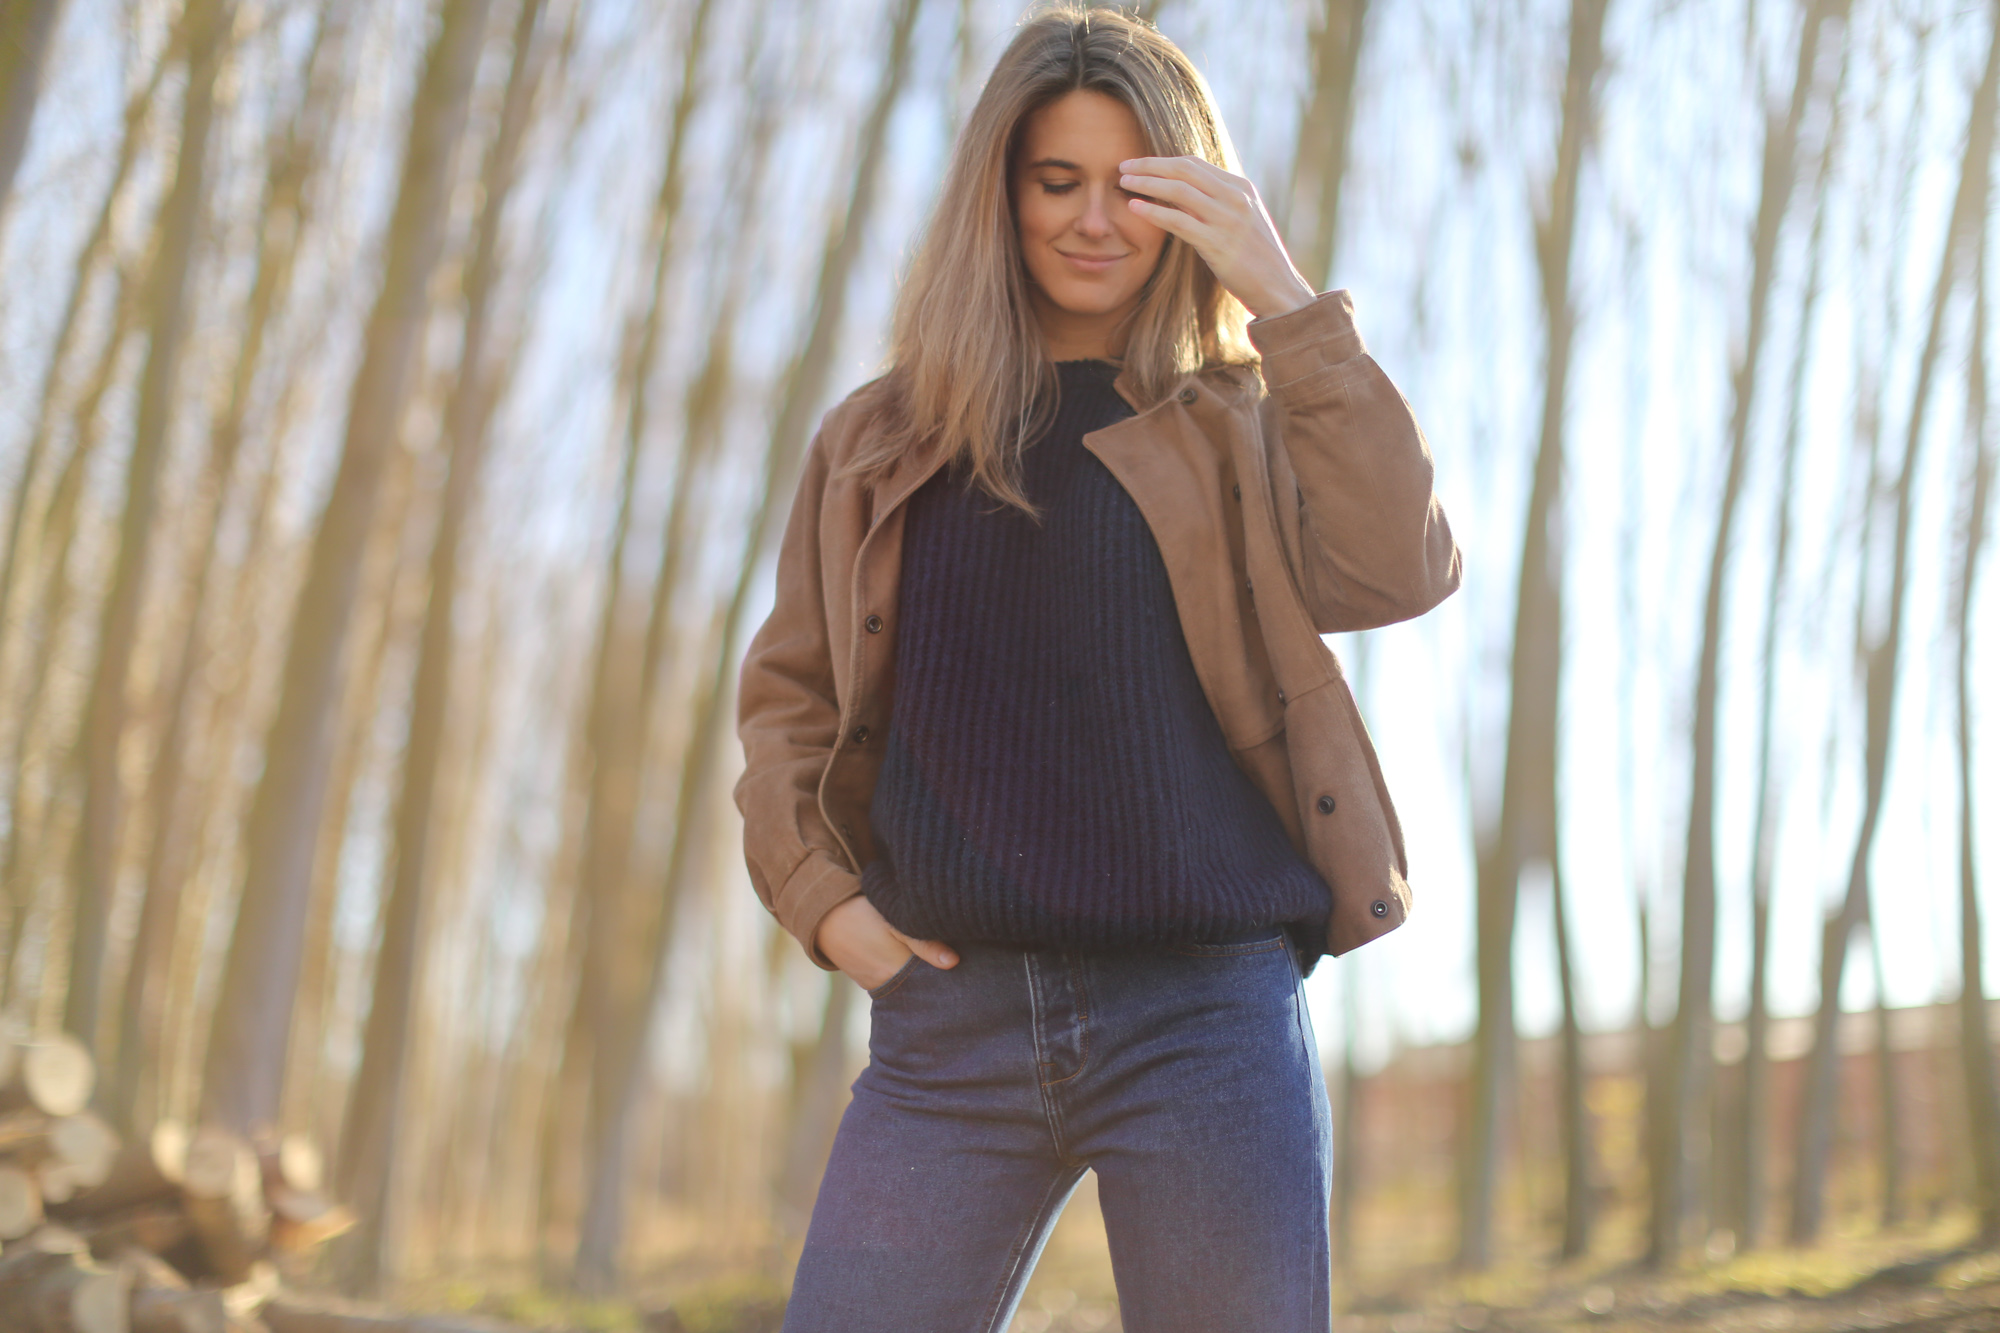 Clochet_streetstyle_mom_jeans_adidas_stan_smith_vintage_suede_jacket-1-20